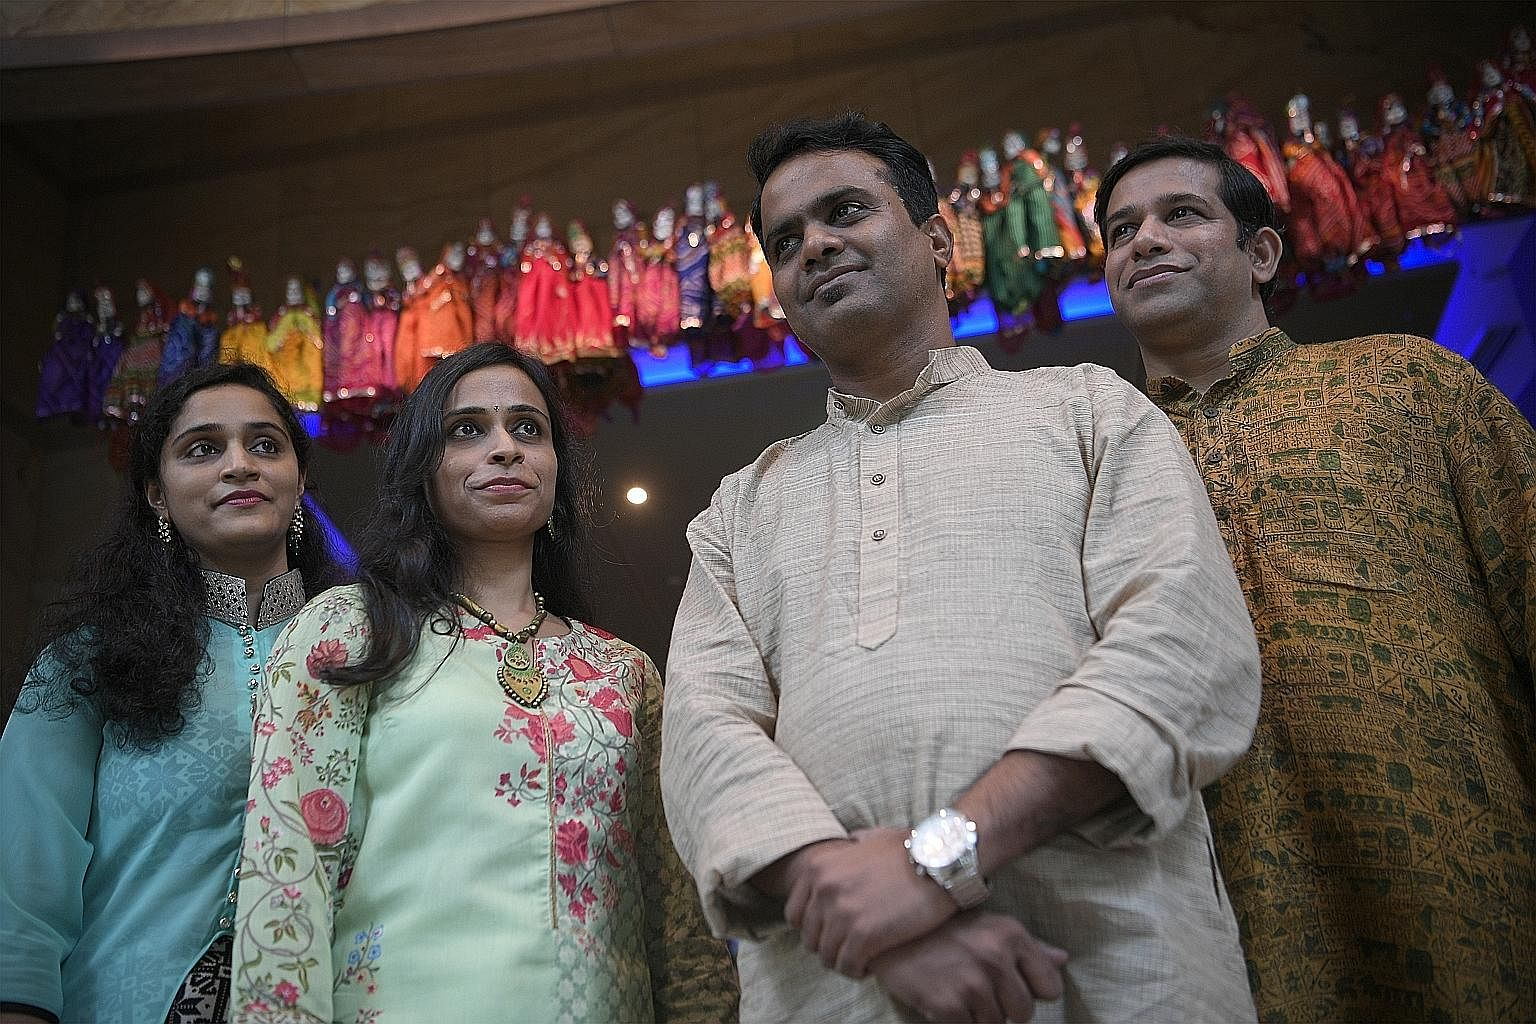 Performers for the Chakra-thon include (from far left) Namitha Mehta, Pratima Bellave, Nawaz Mirajkar and Ravindra Parchure.